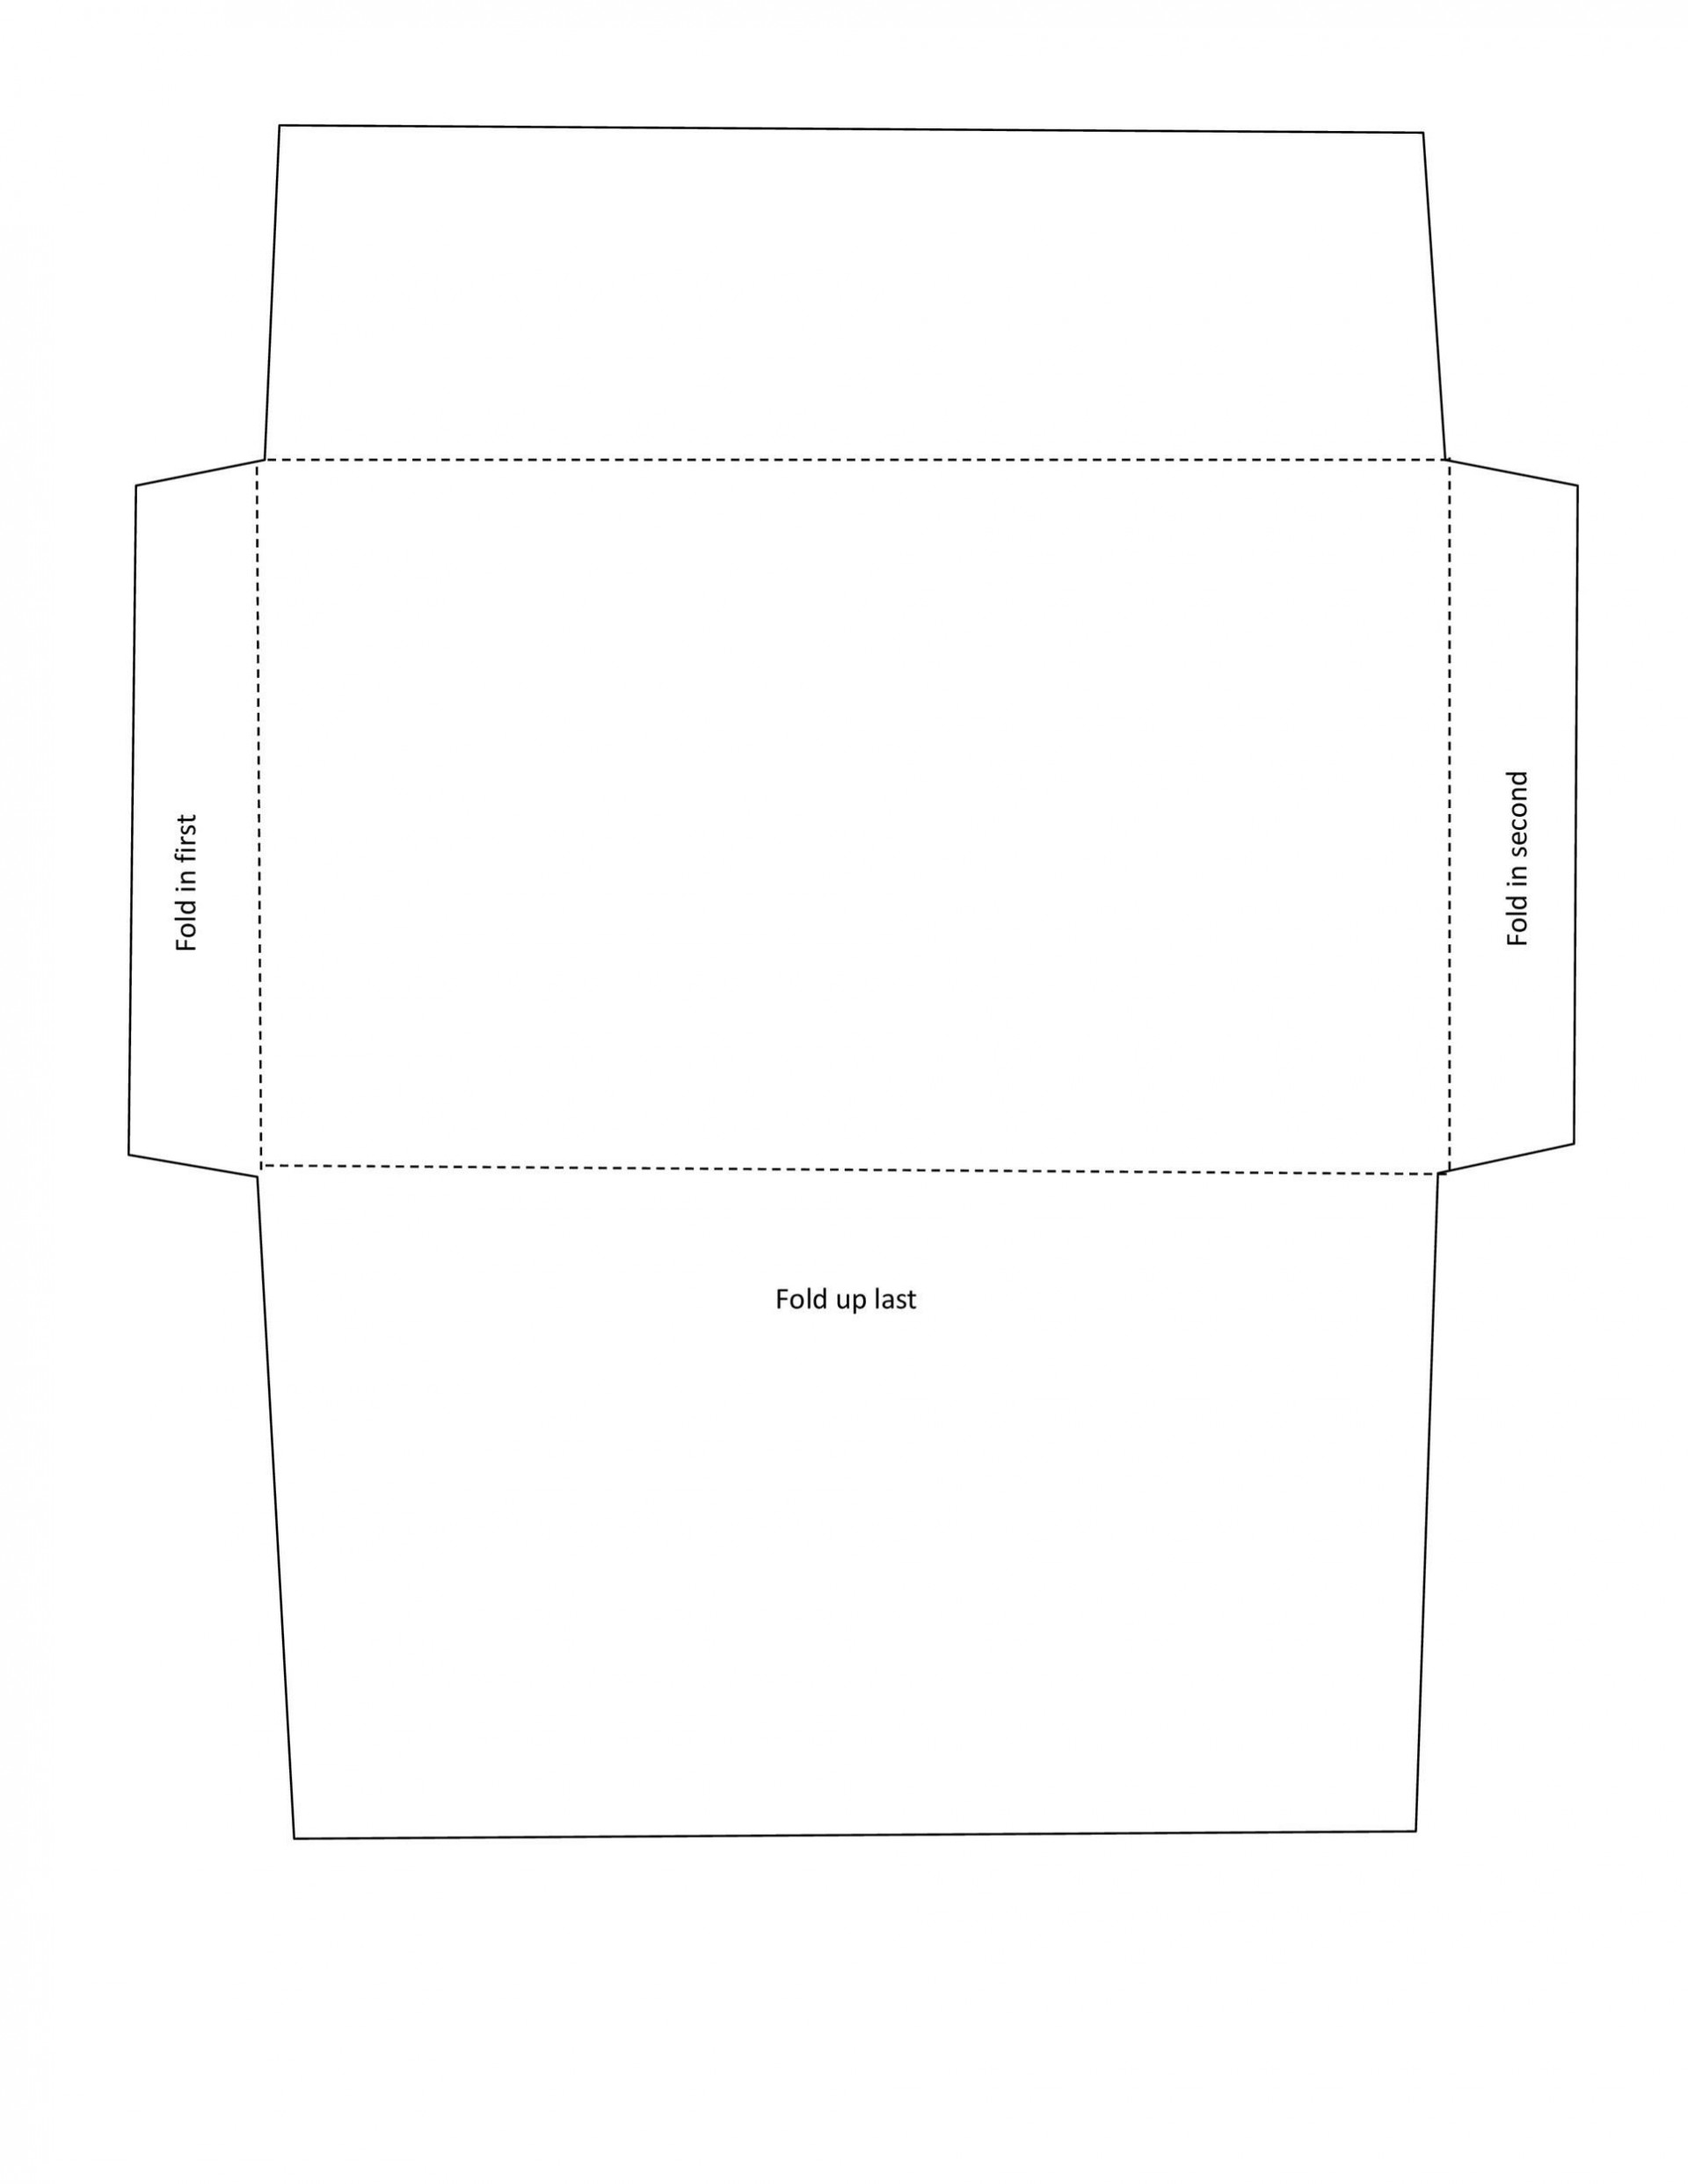 007 Awful Envelope Template For Word High Definition  Avery A7 5x7 Microsoft1920